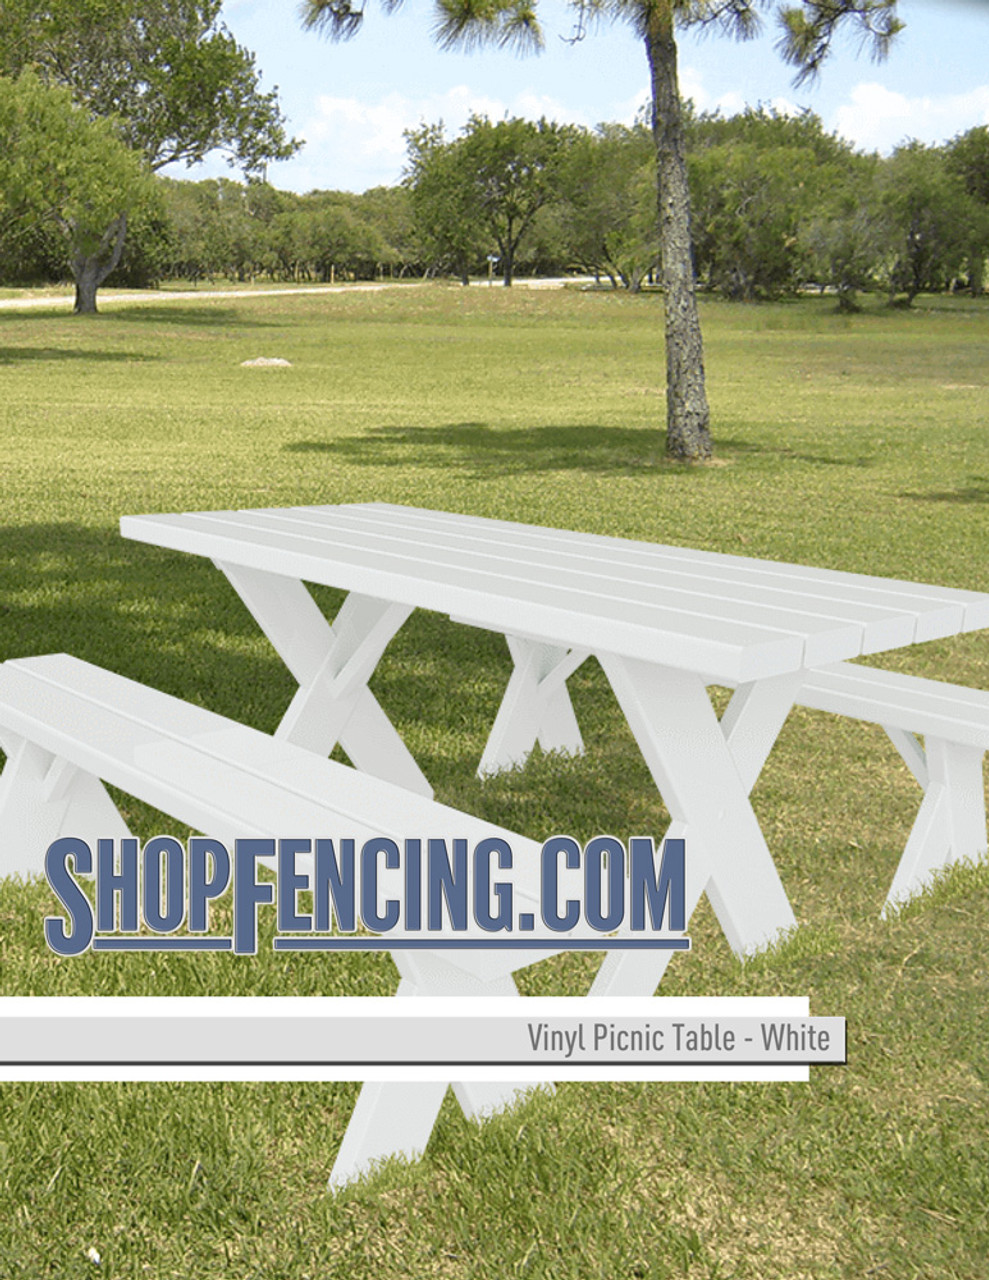 Vinyl Picnic Tables From ShopFencing.com